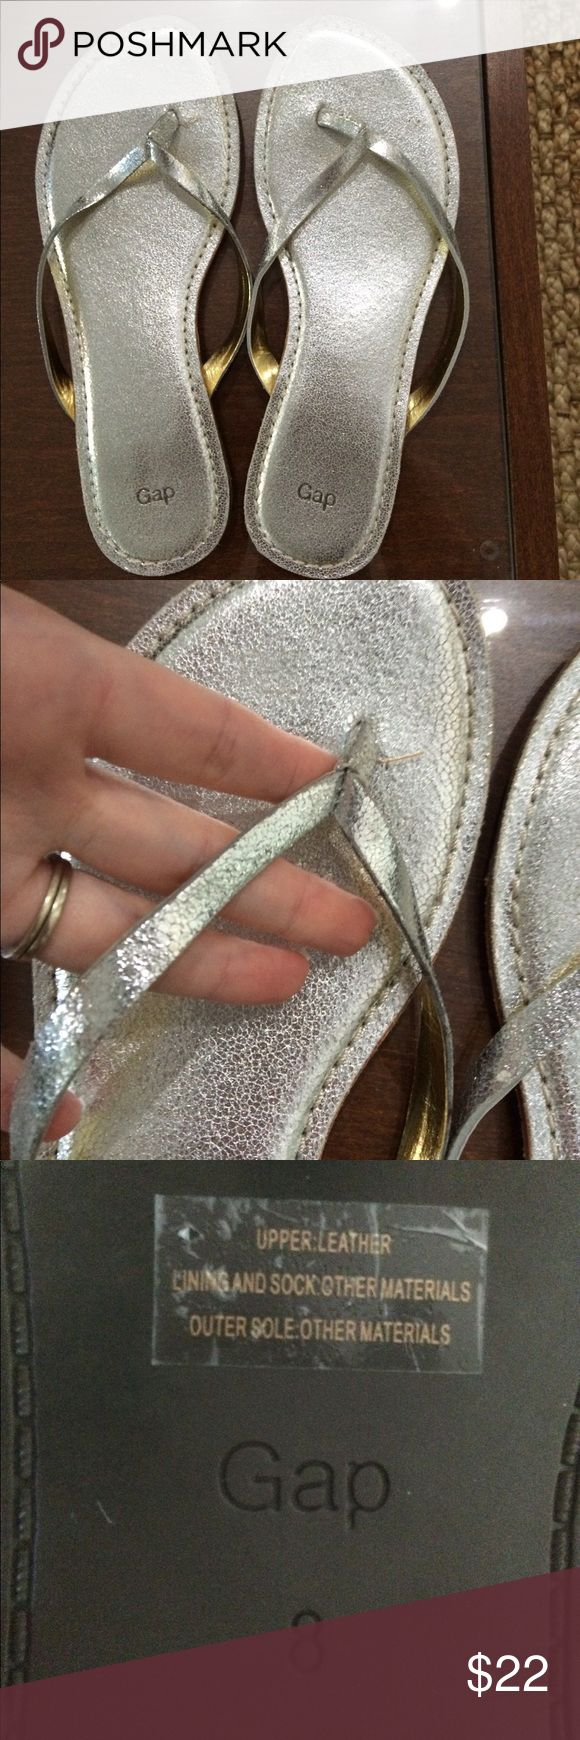 🎉Gap leather silver metallic flip flops These are sparkly for being leather, very cute, easy to dress up an outfit with them. They have been worn once. The entire upper including the footbed is leather. They're quite comfortable. Thank you for Poshing with me! 😀💖 Shoes Sandals